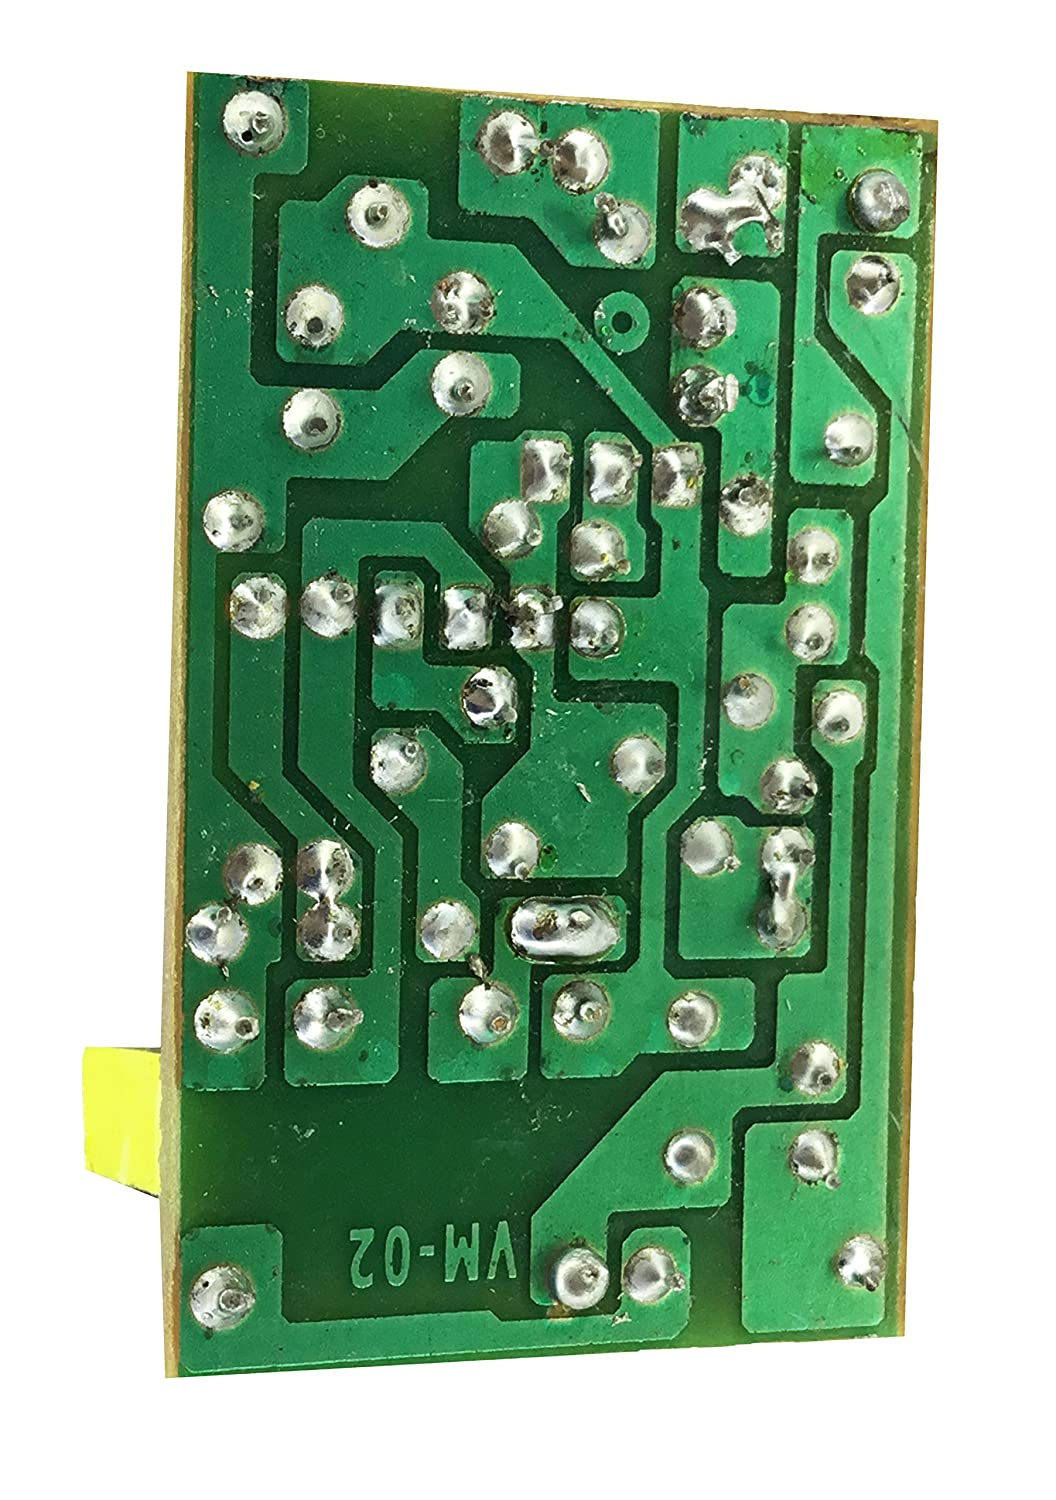 Sale 12vdc To 5vdc Converter Circuit Pgsa2z Power Supply Pcb Board 10pcs 220v Ac 12v Dc Smps Industrial Scientific